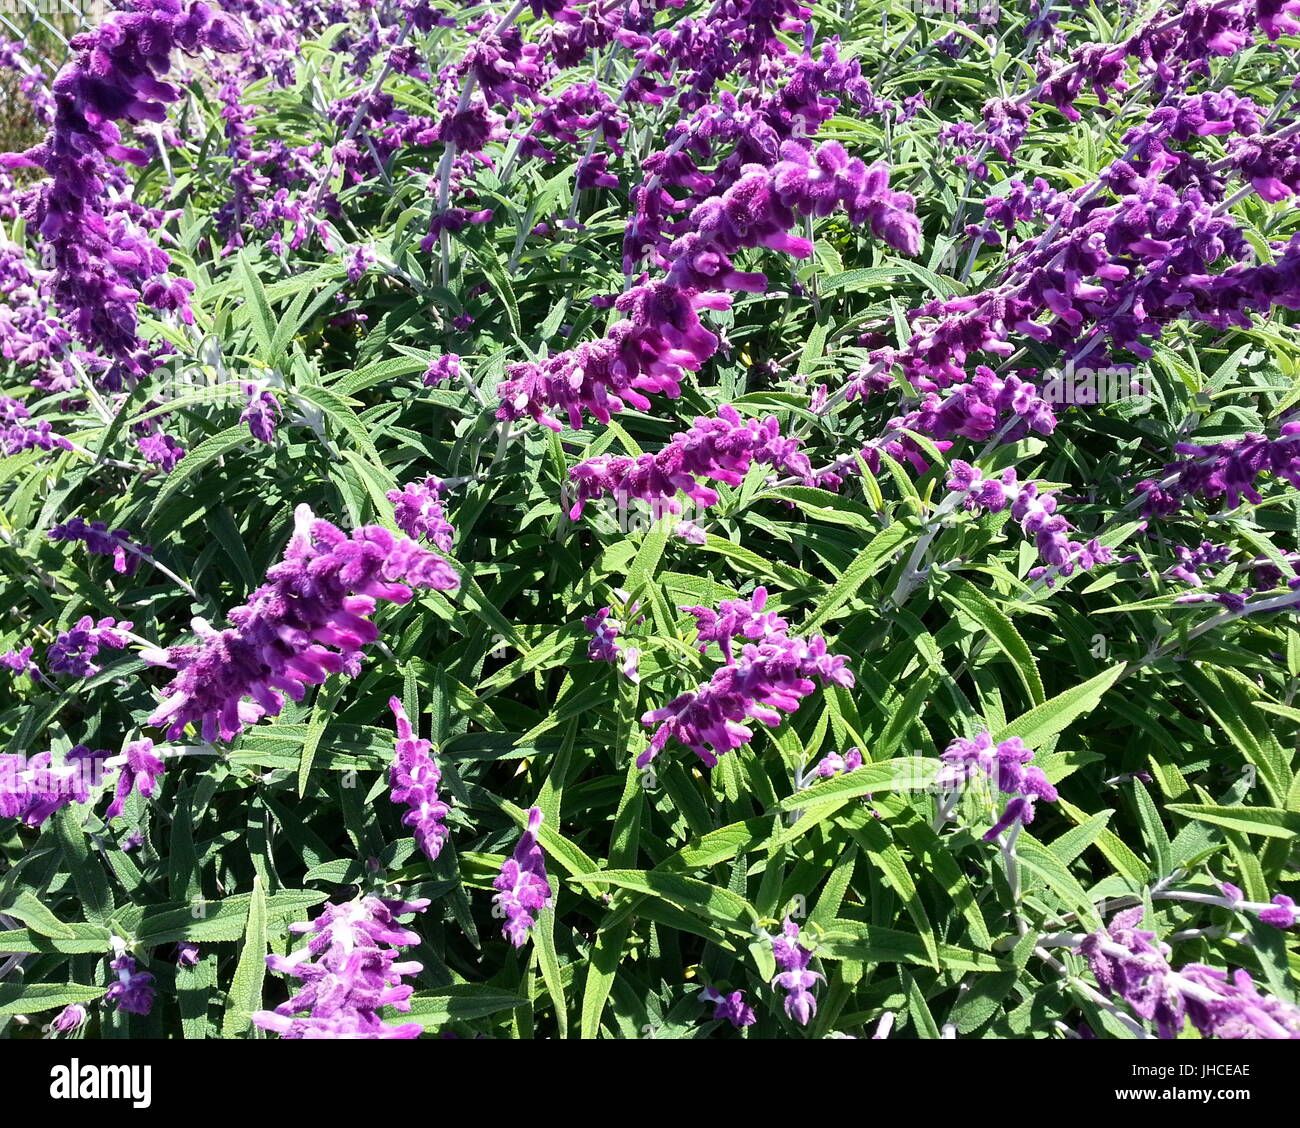 Elongated Purple Flower - Stock Image